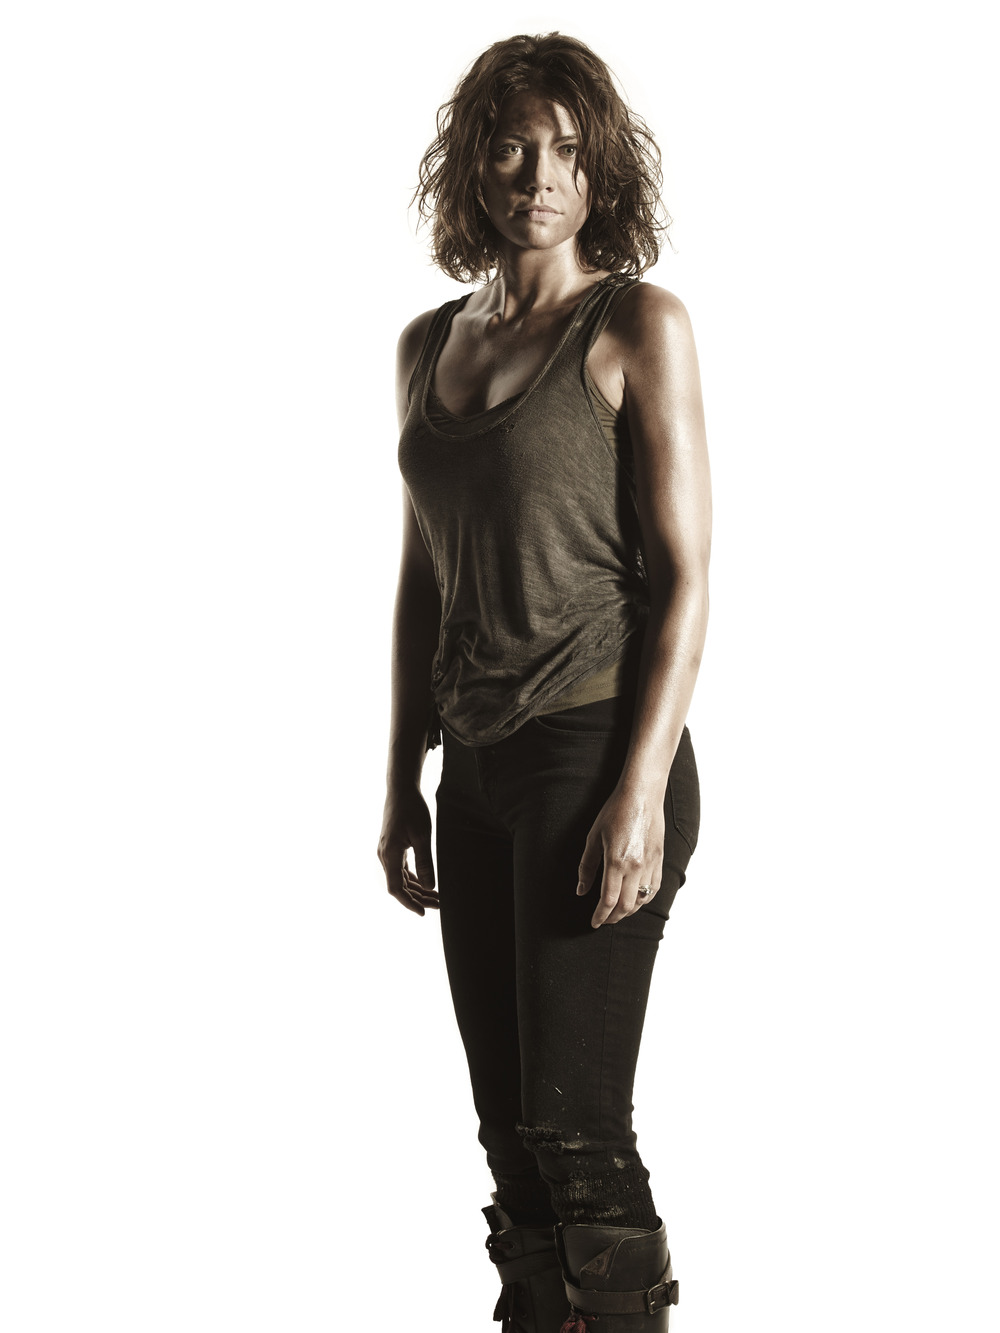 The Walking Dead Season 4: More Clues That Maggie Could Be Pregnant!